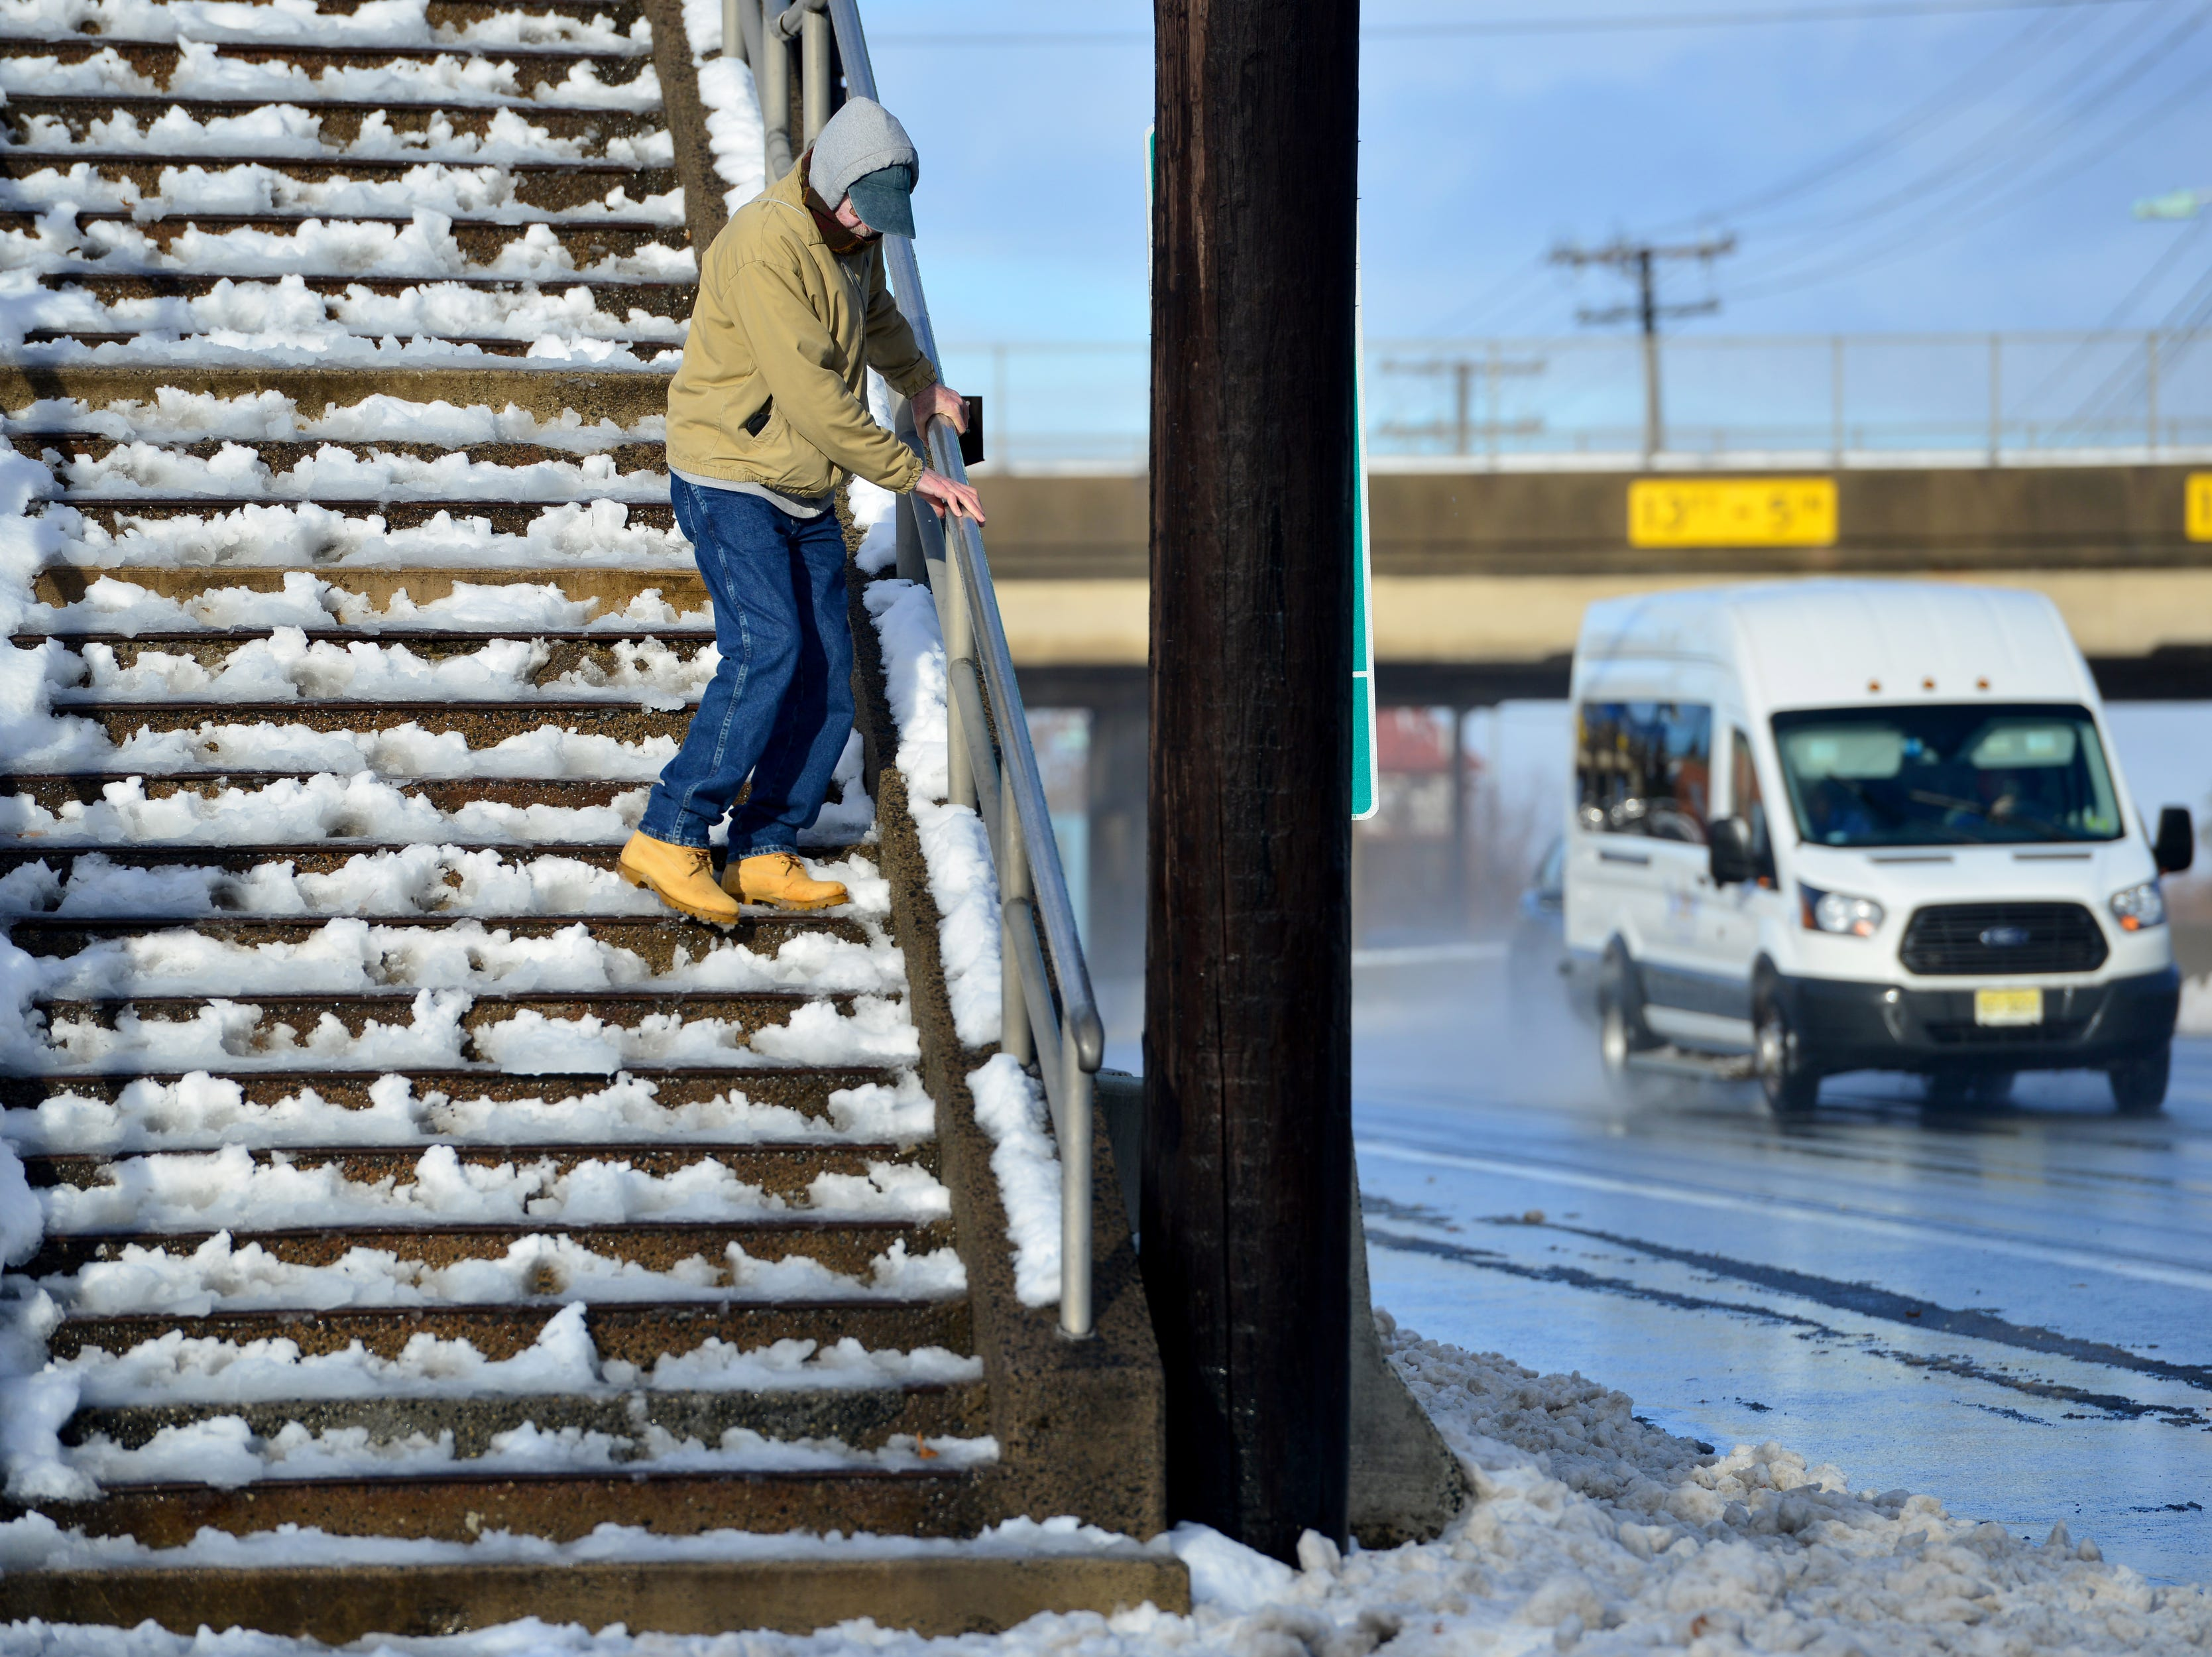 Bill Bragg, 69 of Fort Lee, holds tight onto the railing as he comes down an unshoveled stairs after crossing over Route 4 in Paramus on Friday morning November 16, 2018.